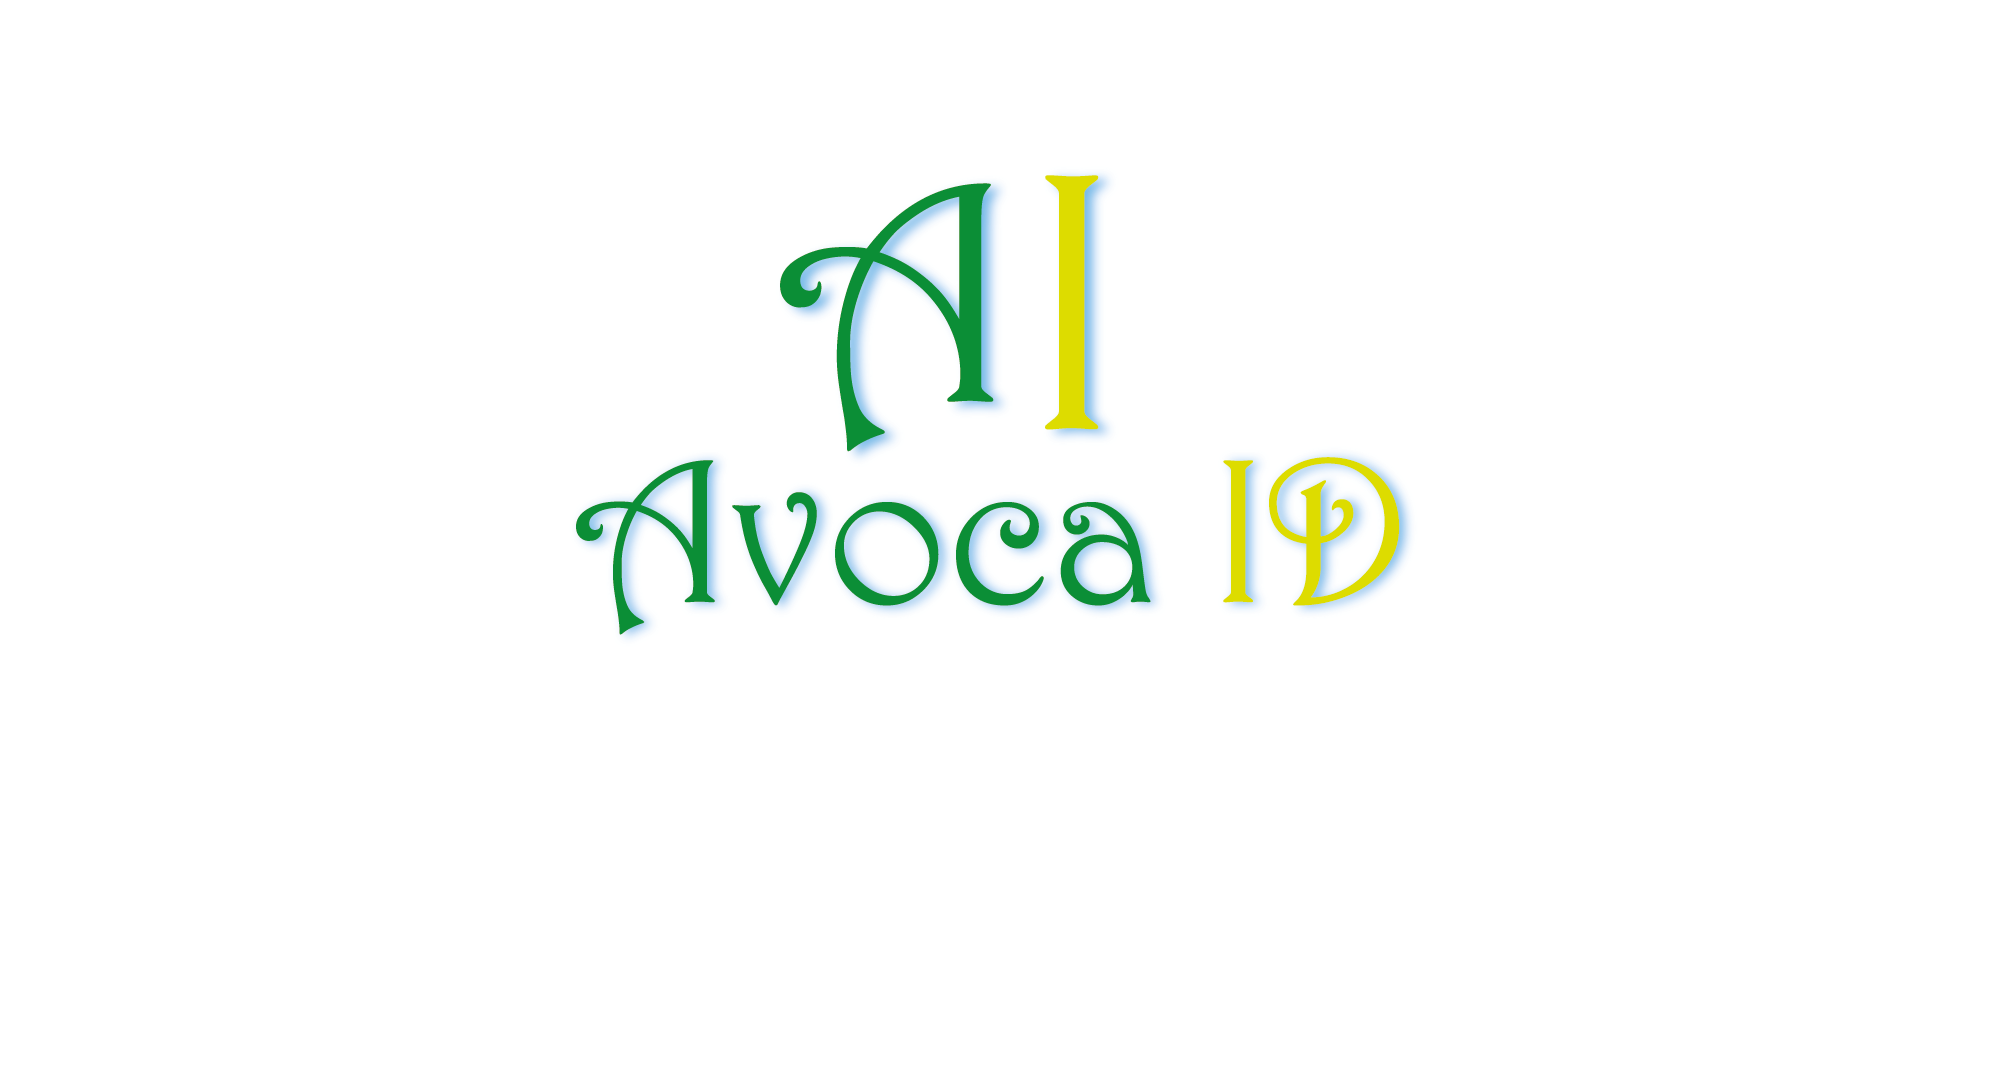 Design #7 por joolo.1995 | Please create a modern simplistic logo for a Agricultural business known as Avoca ID